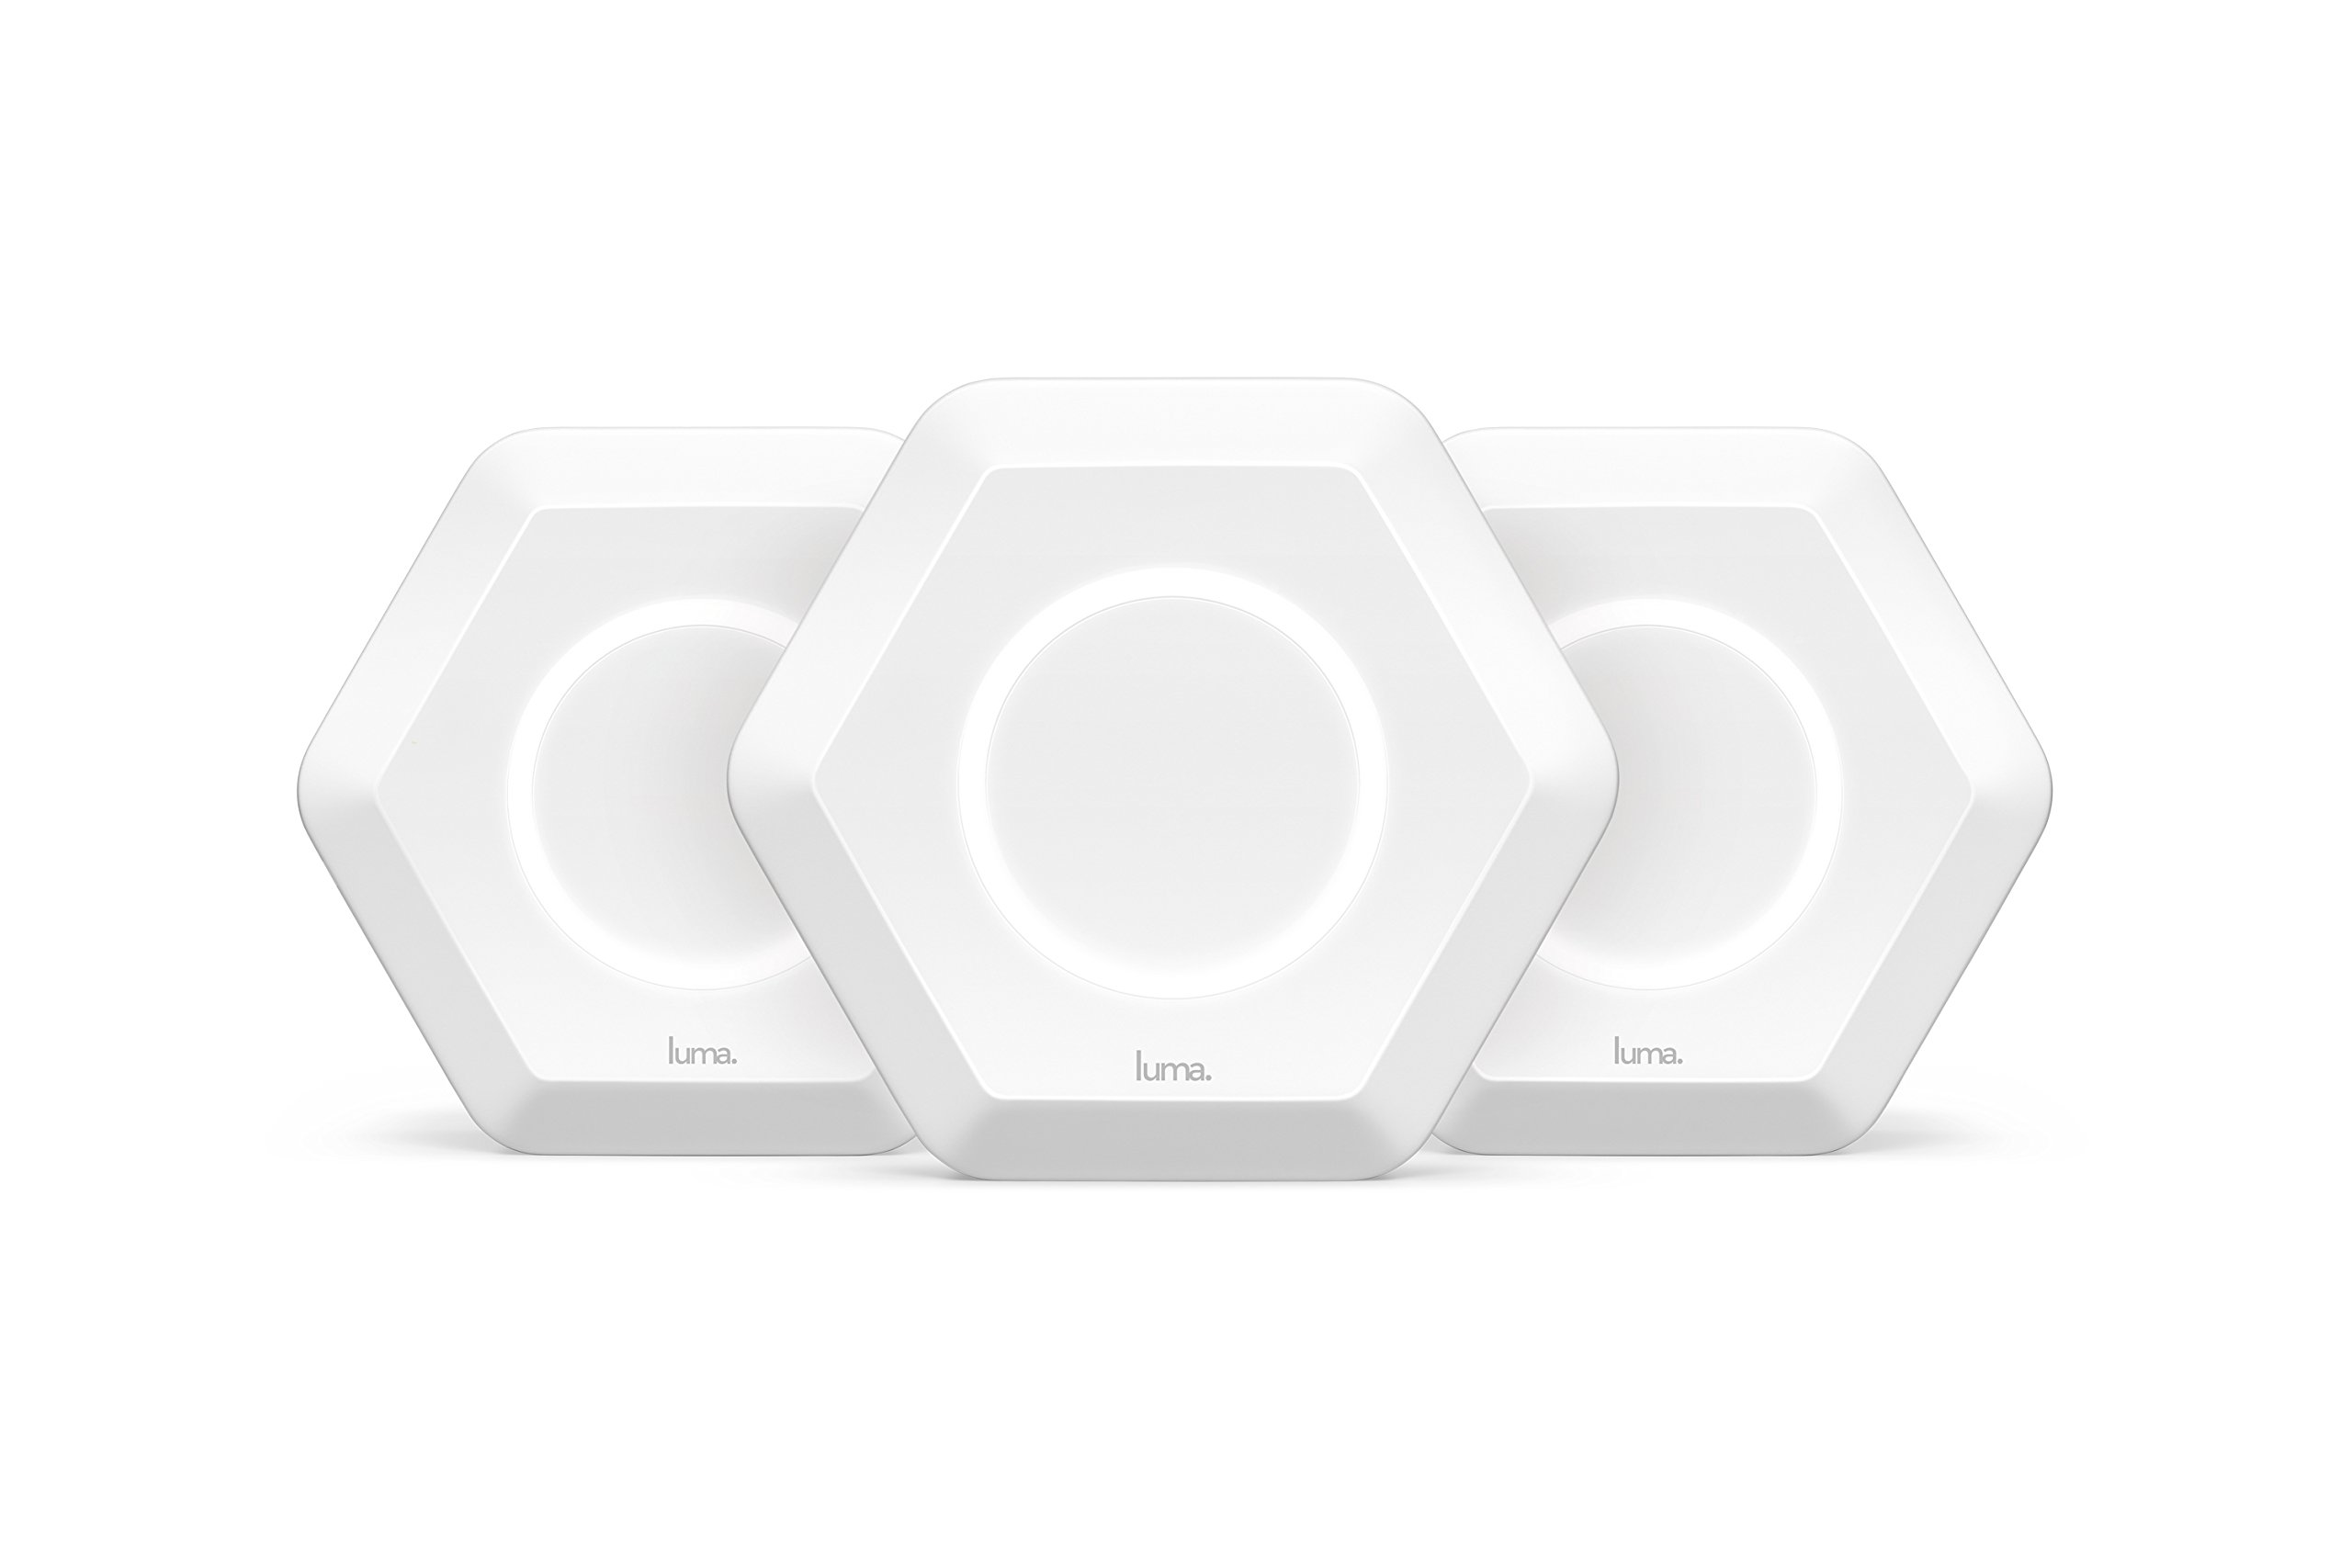 Luma Whole Home WiFi (3 Pack - White) -   Replaces WiFi Extenders and Routers, Works with Alexa, Free Virus Blocking, Free Parental Controls, Gigabit Speed by Luma